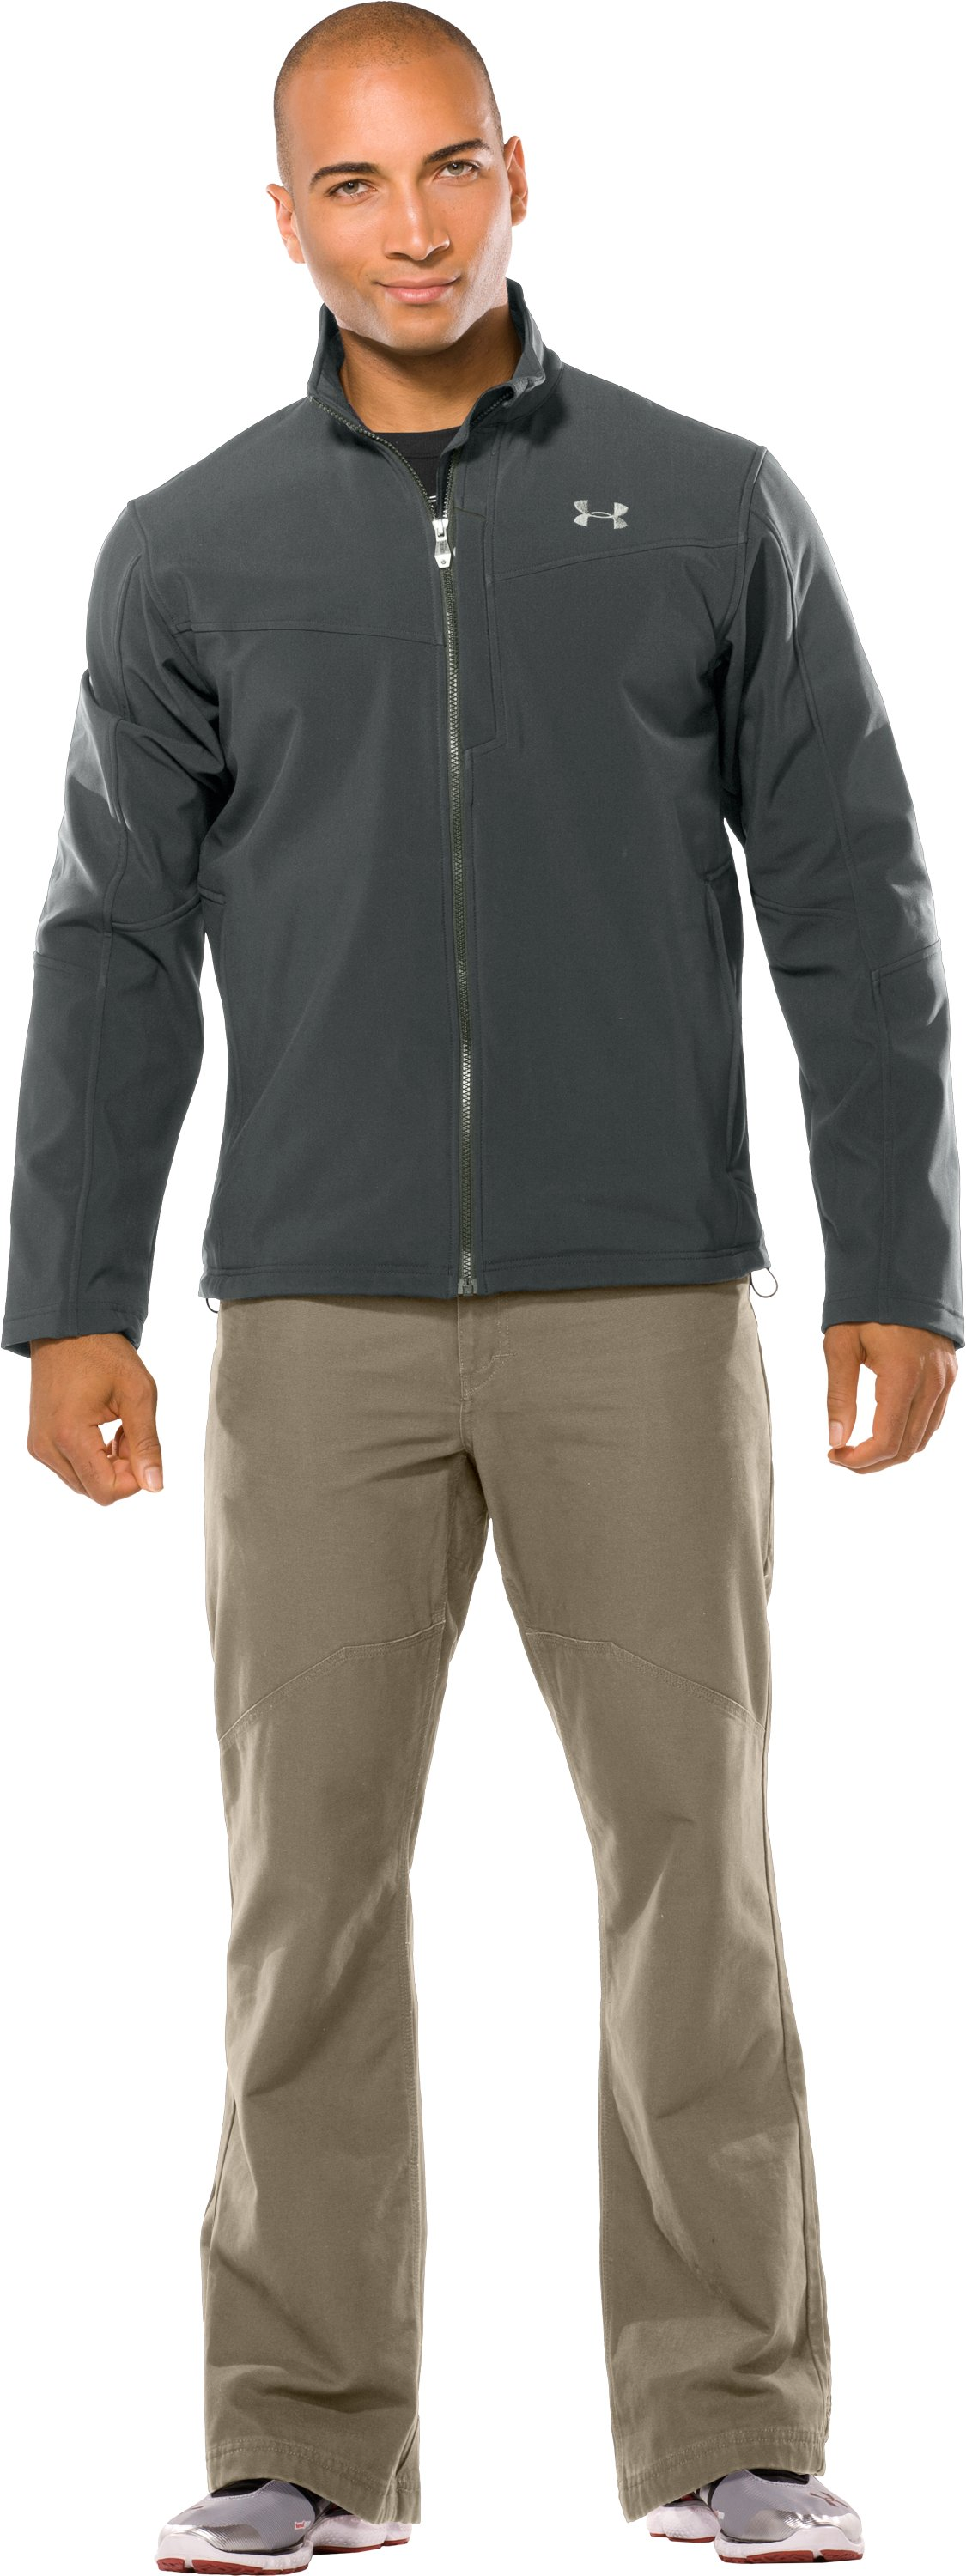 Men's Skyscraper Softshell Jacket, Battleship, Front